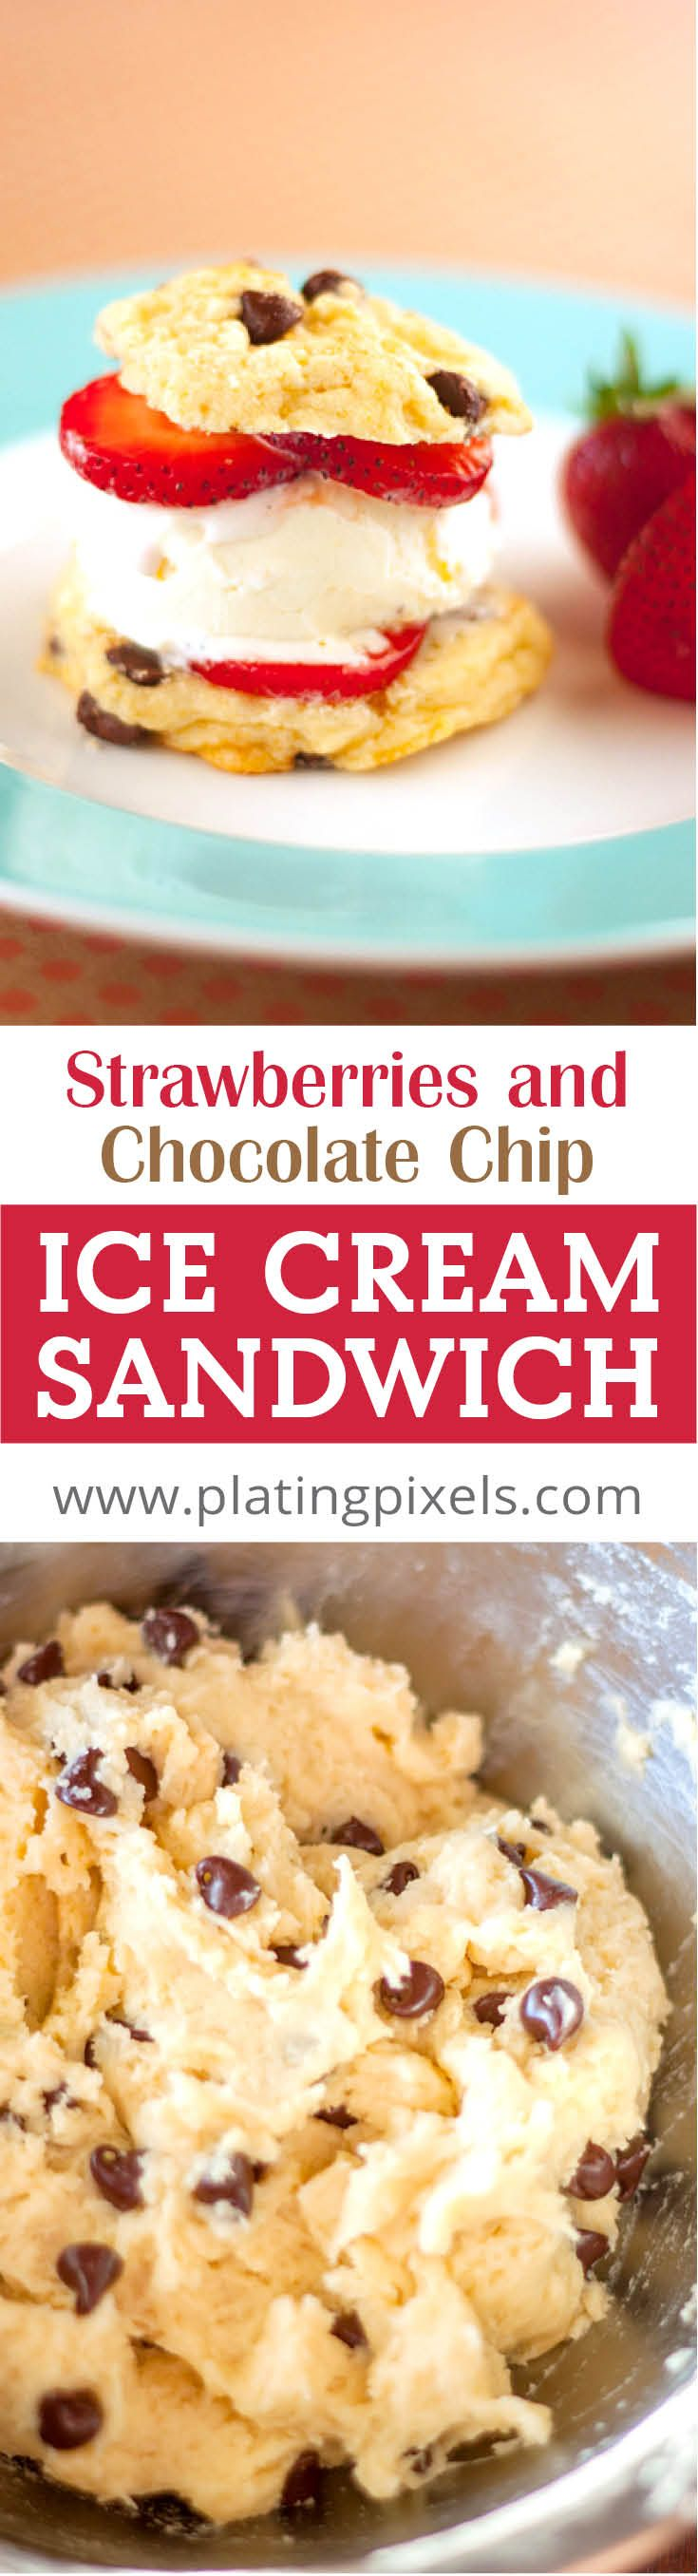 Strawberry and Chocolate Chip Cookie Ice Cream Sandwich by Plating Pixels. Bite into one and let it slowly dissolve in your mouth. Enjoy outside or cozied up on your couch. - www.platingpixels.com